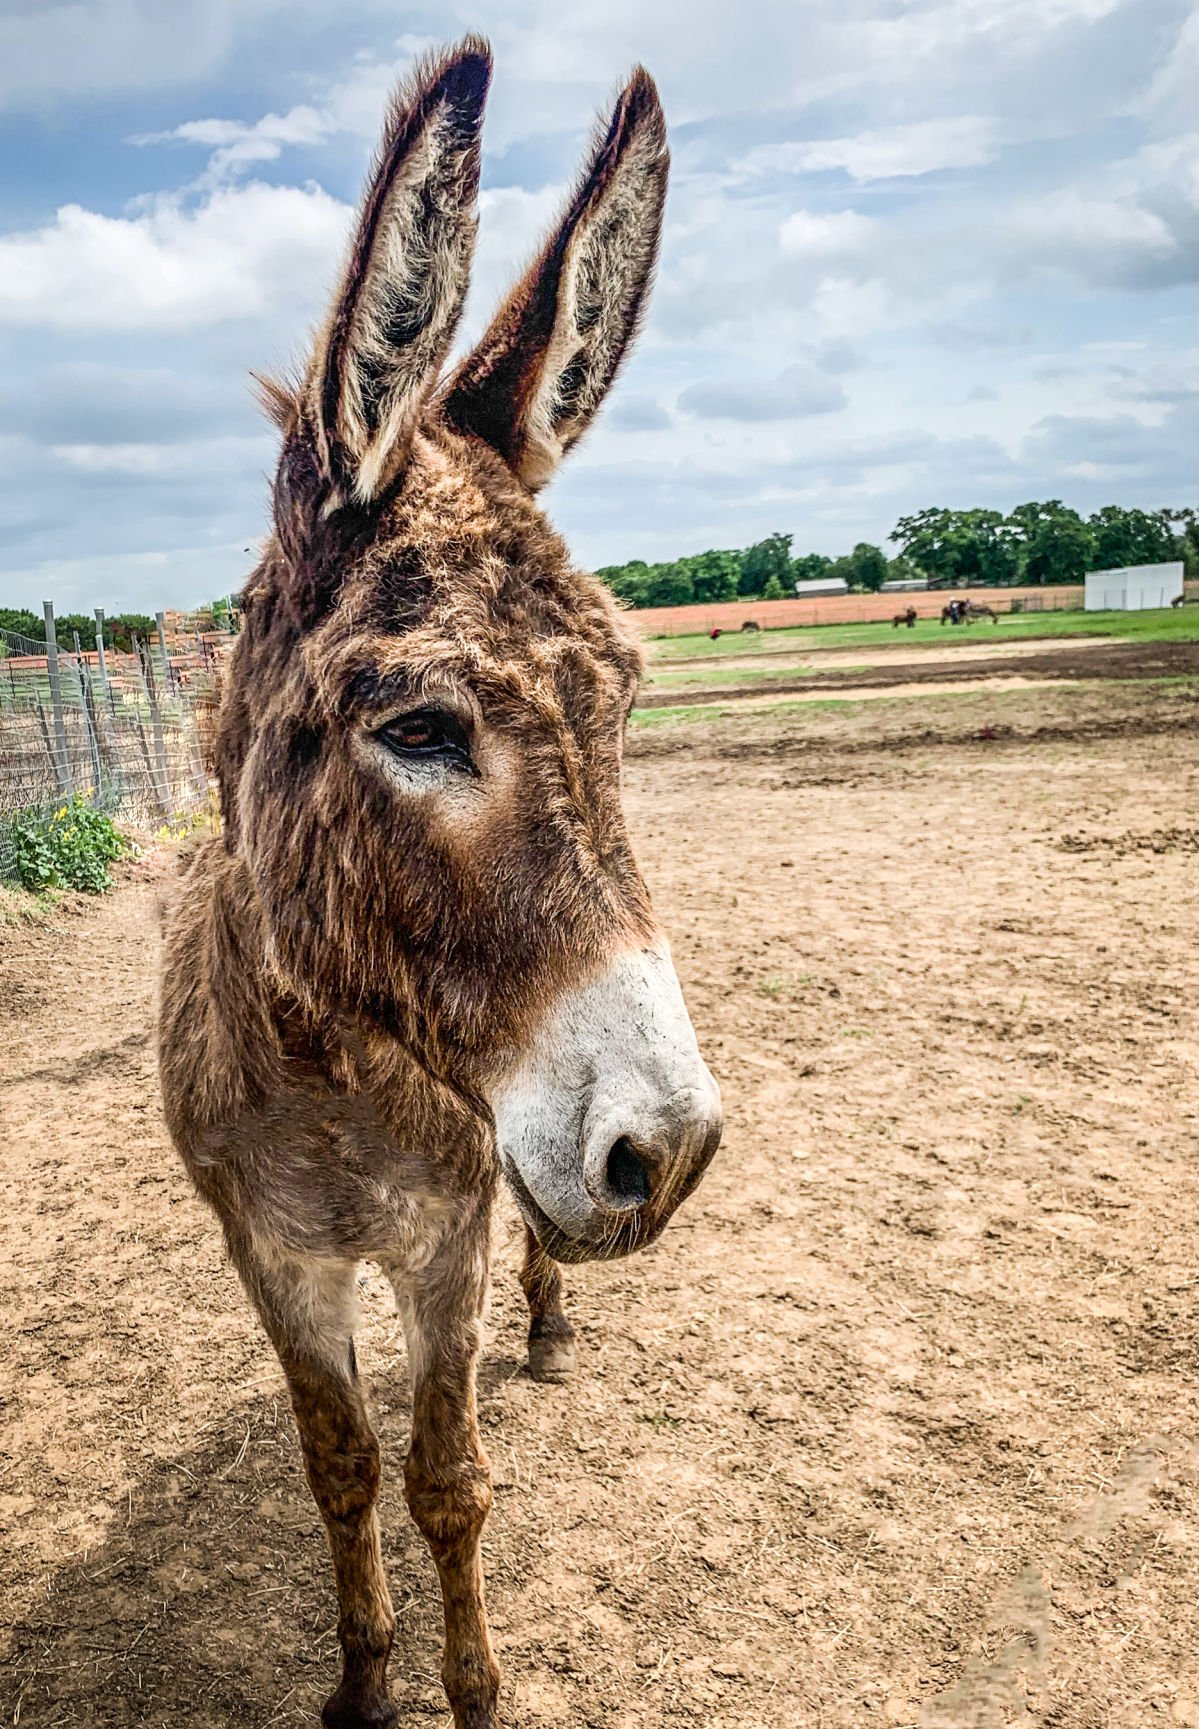 More than 60 donkeys, horses available for adoption | Local